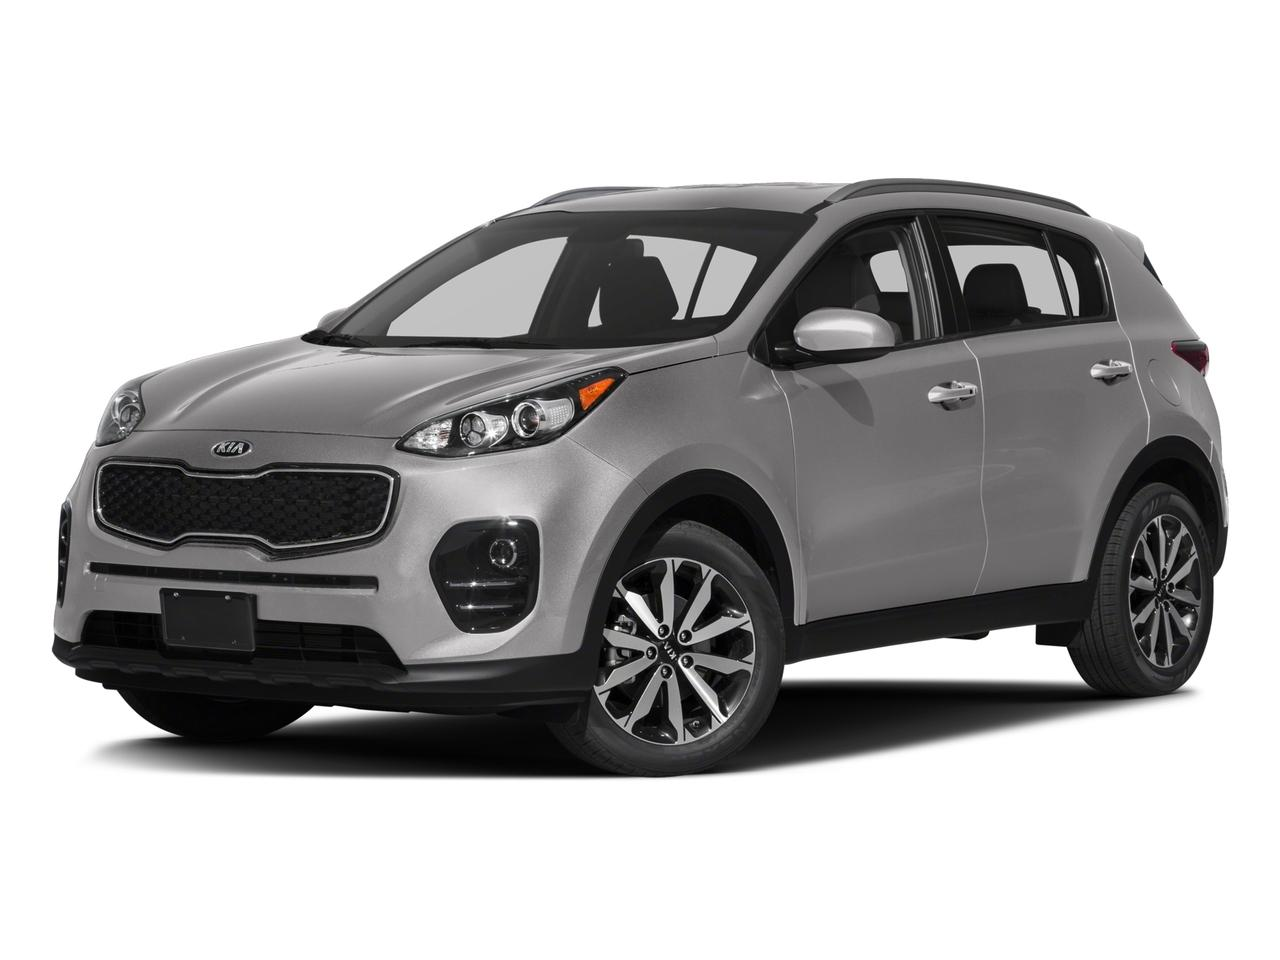 2017 Kia Sportage Vehicle Photo in Jasper, GA 30143